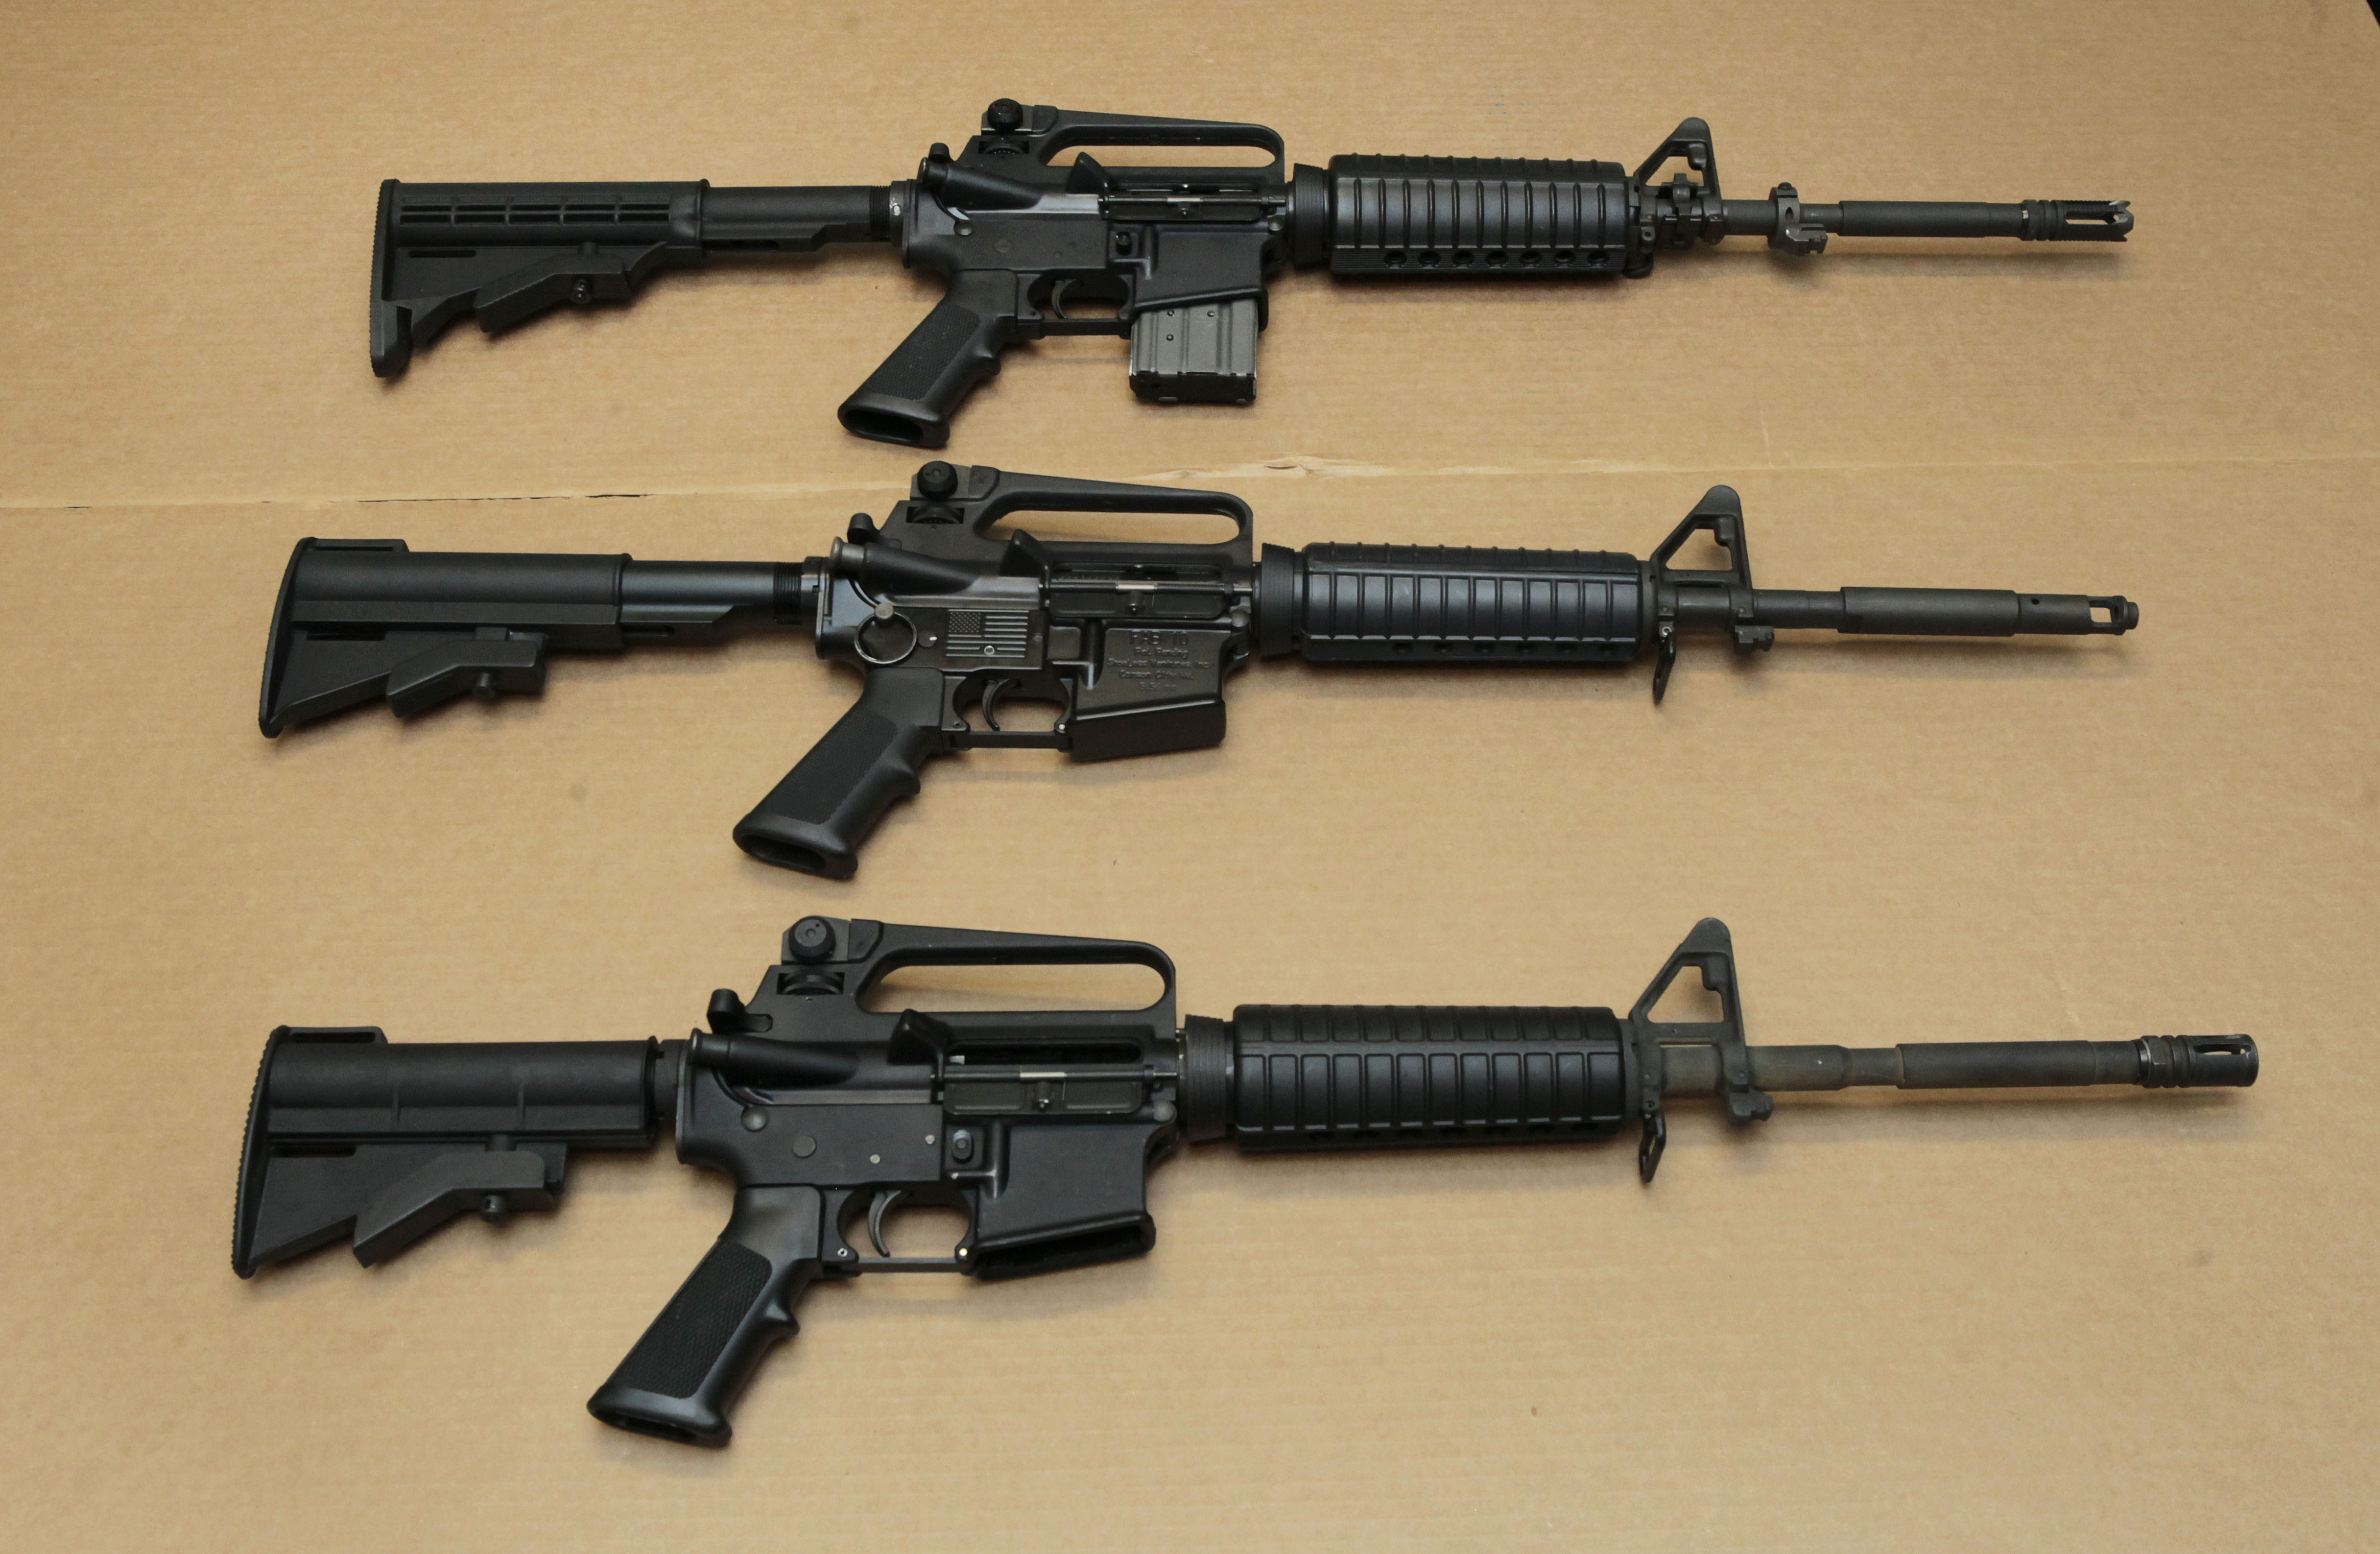 house lawmakers say agency oversight of firearms is 'deplorable